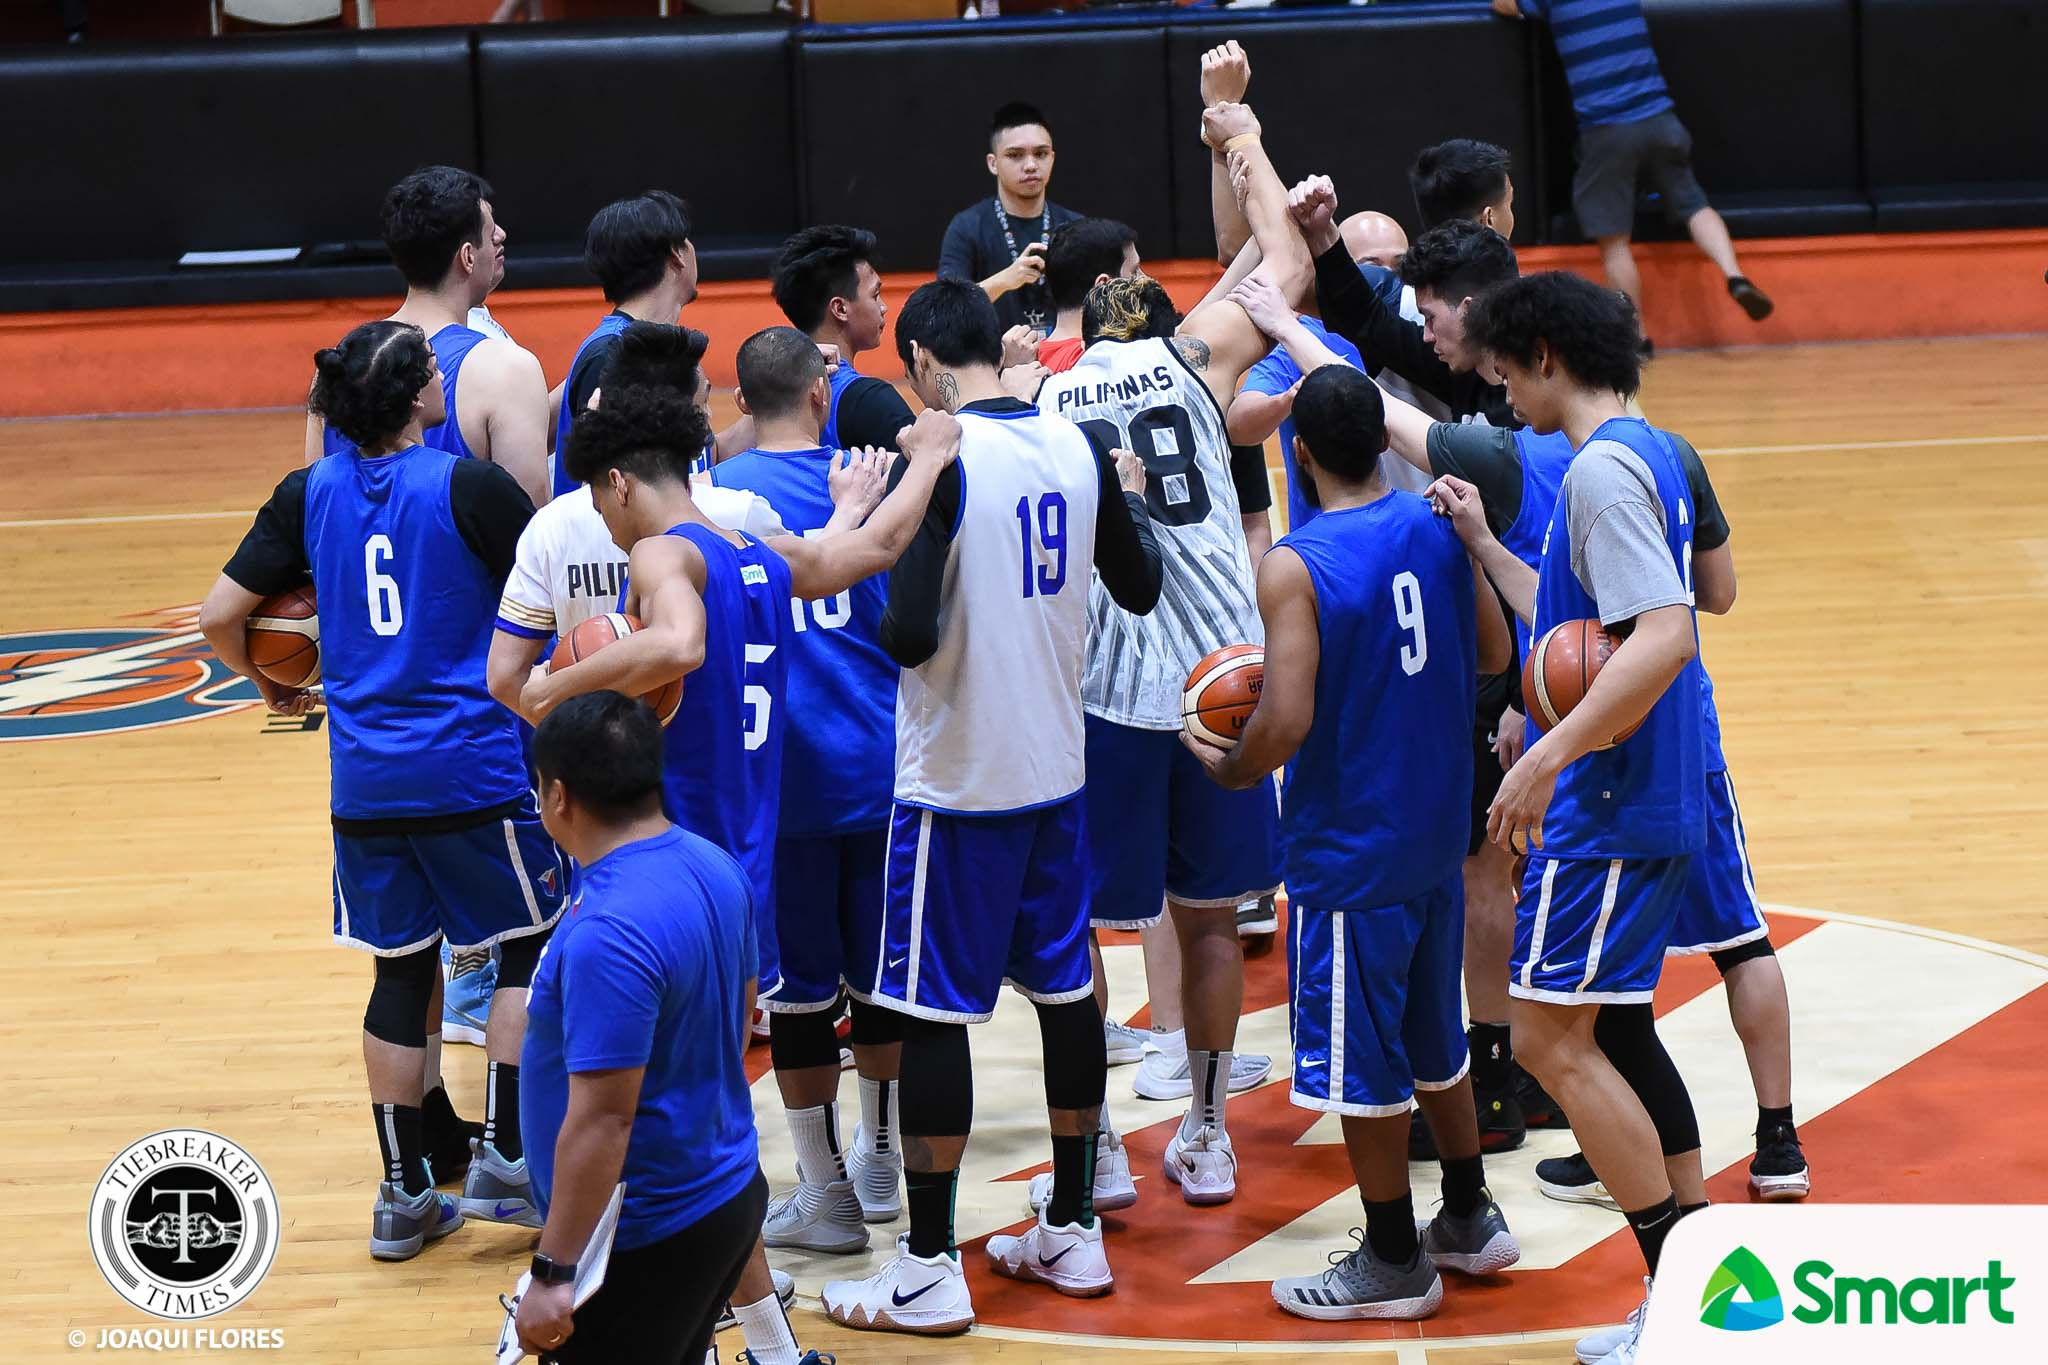 Tiebreaker Times Philippine Team mauls iECO in tune-up 2019 FIBA World Cup Qualifiers Basketball Gilas Pilipinas News  Yeng Guiao Stanley Pringle Scottie Thompson Raymond Almazan Paul Lee Marcio Lassiter JP Erram Joshua Munzon IECO Green Warriors Ian Sangalang Gilas Elite Gabe Norwood Gab Banal Beau Belga Asi Taulava Ariel Vanguardia Allein Maliksi Alex Cabagnot Aguilar 2019 FIBA World Cup Qualifiers